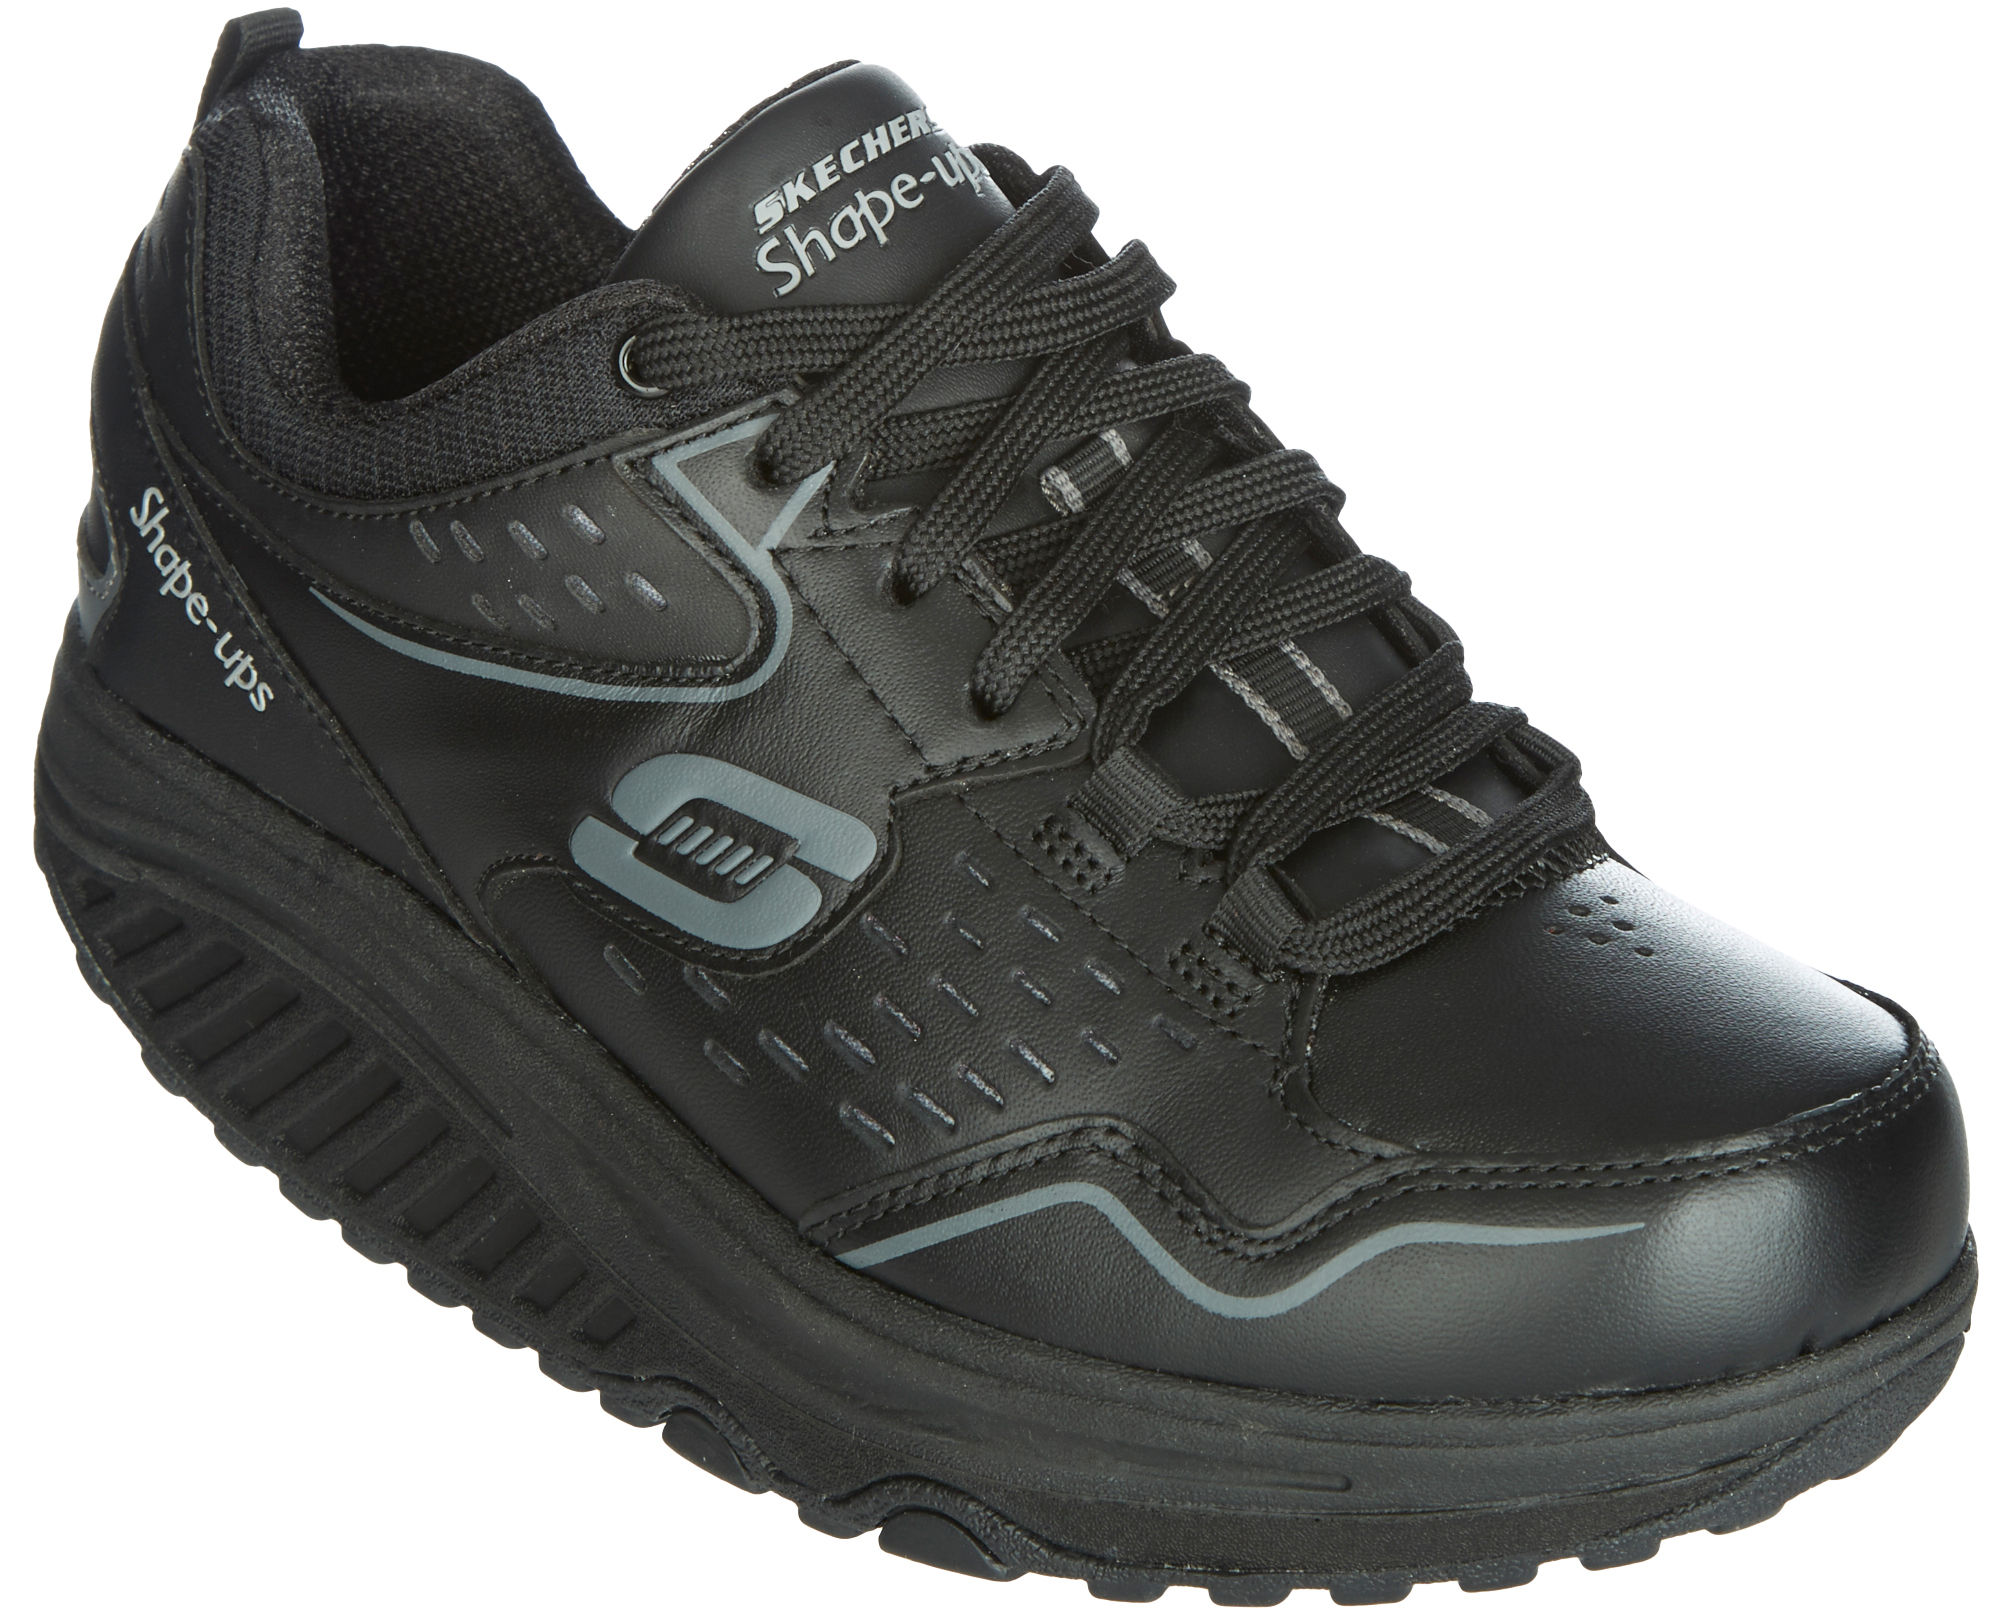 skechers womens perfect comfort shape ups ebay. Black Bedroom Furniture Sets. Home Design Ideas